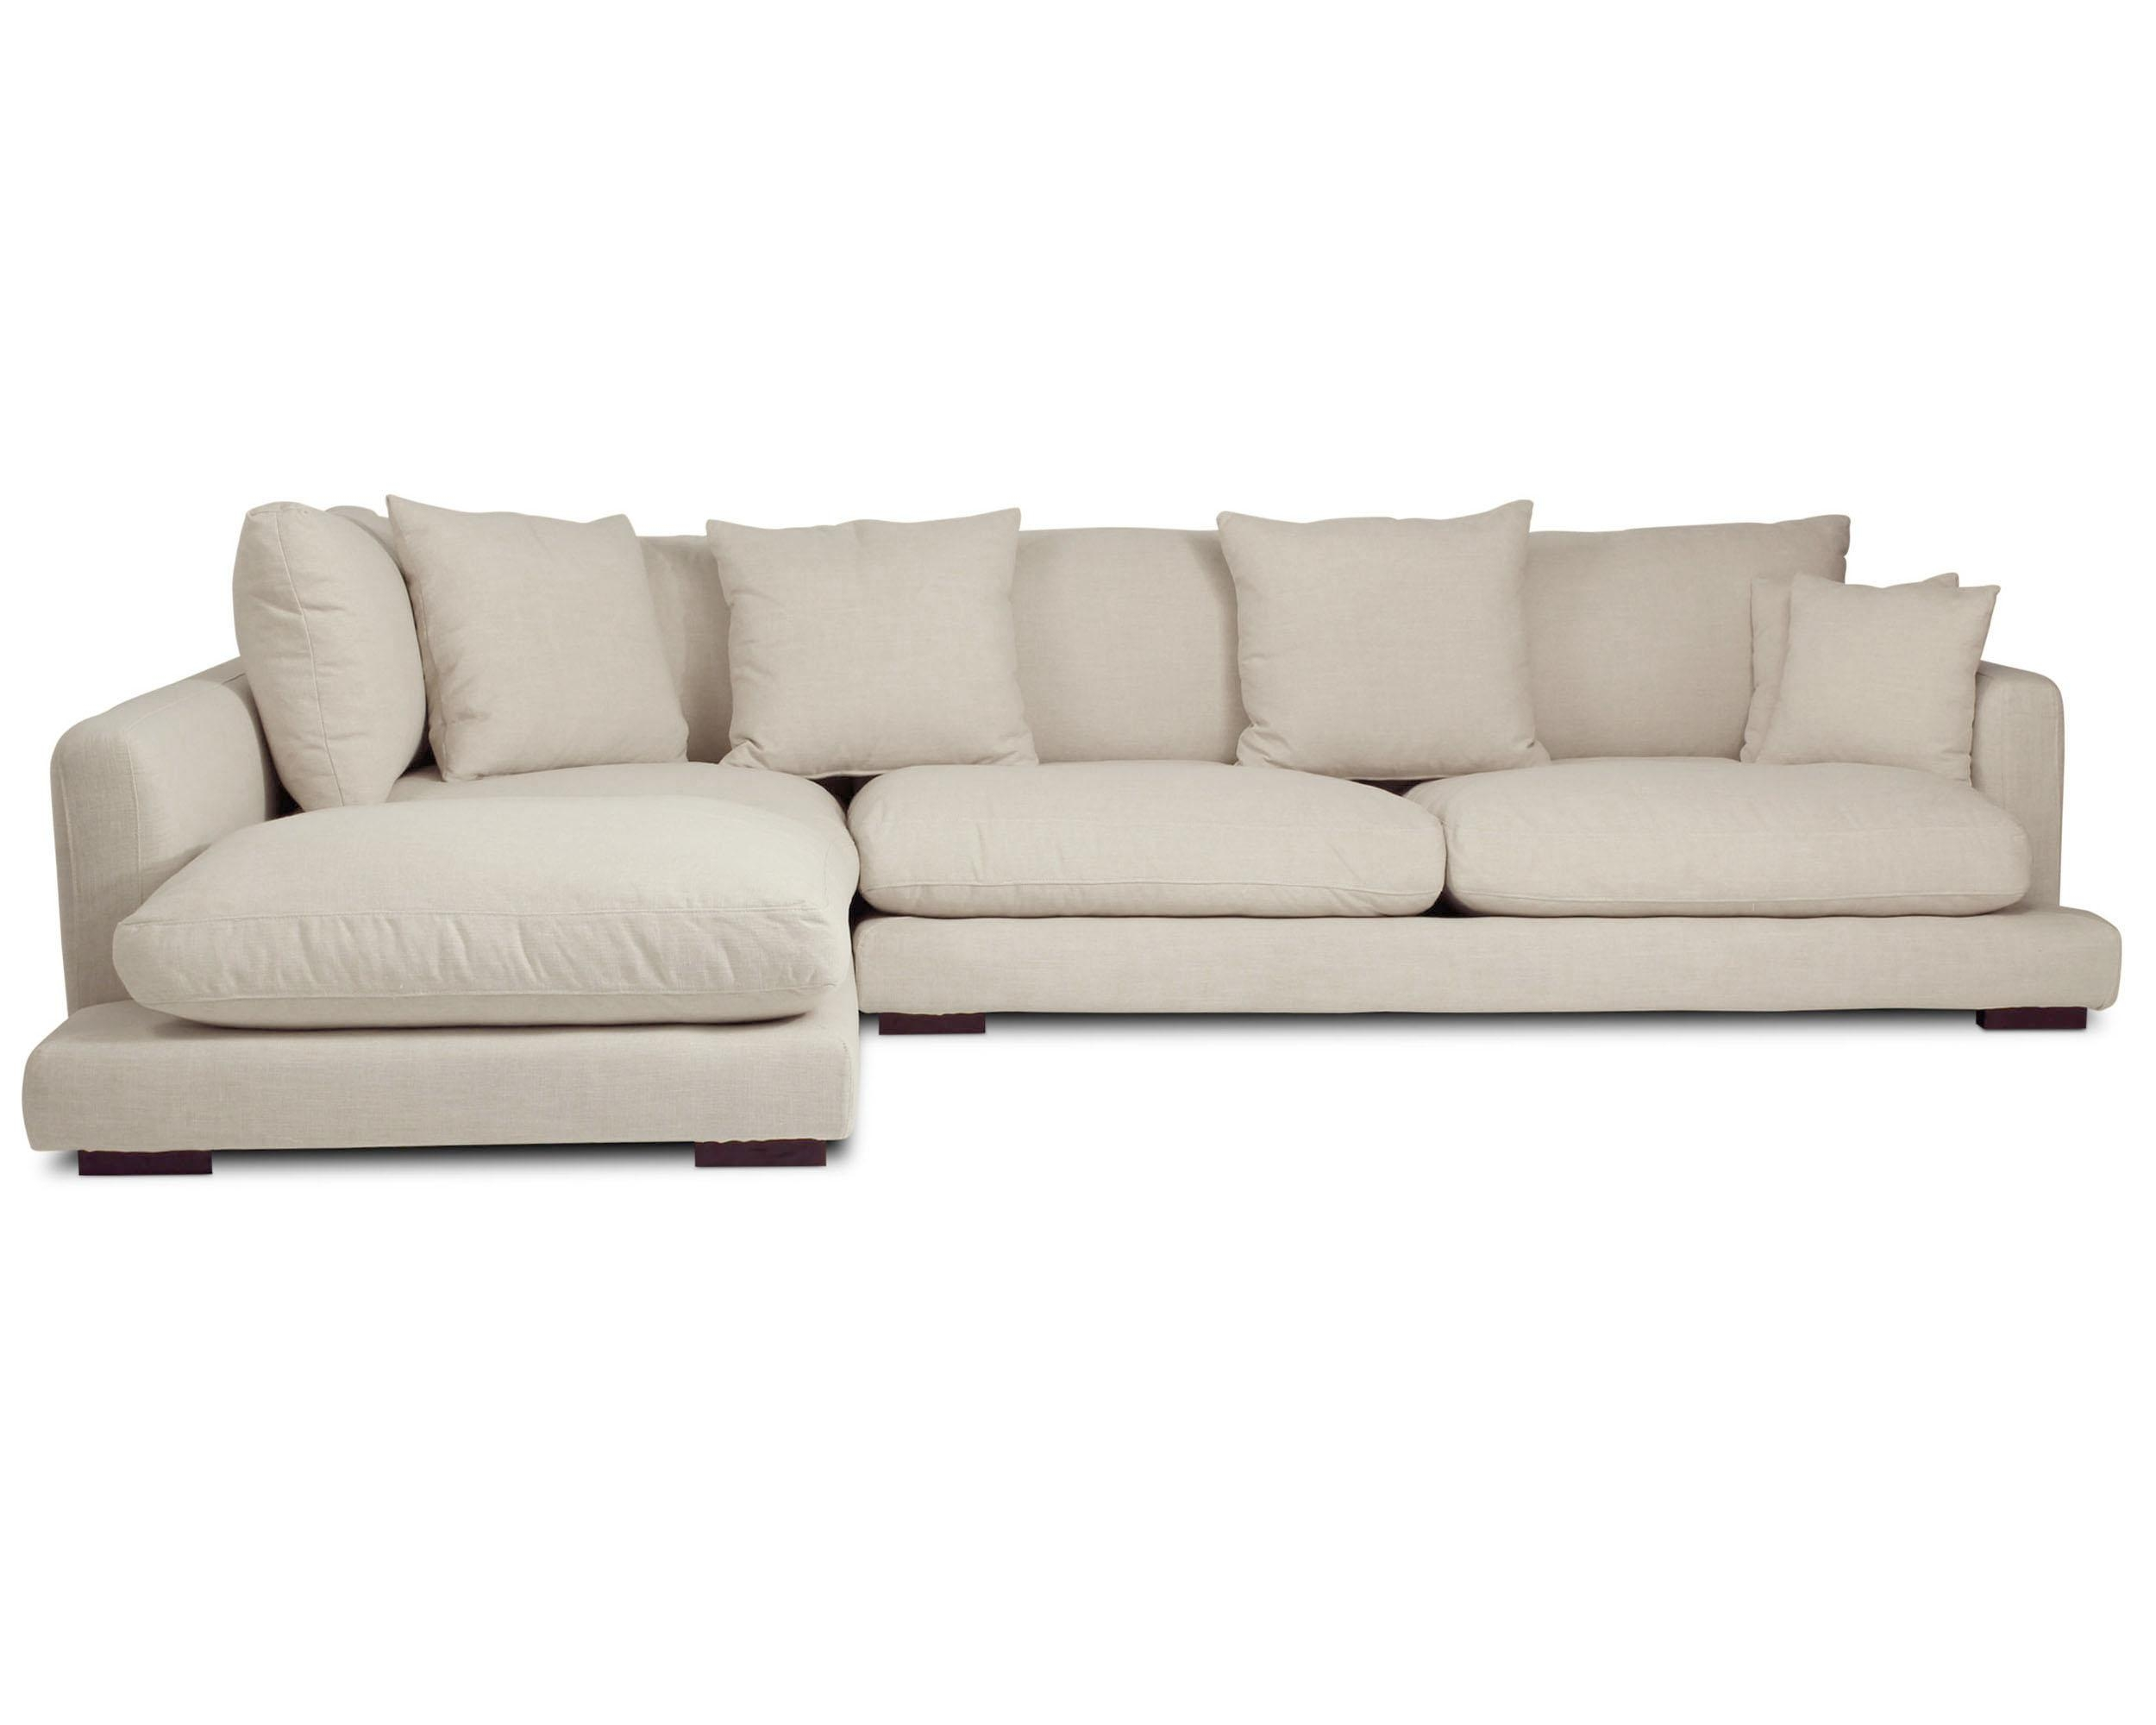 Long Sofa With Chaise 14 With Long Sofa With Chaise | Jinanhongyu For Long Chaise Sofa (Image 13 of 20)